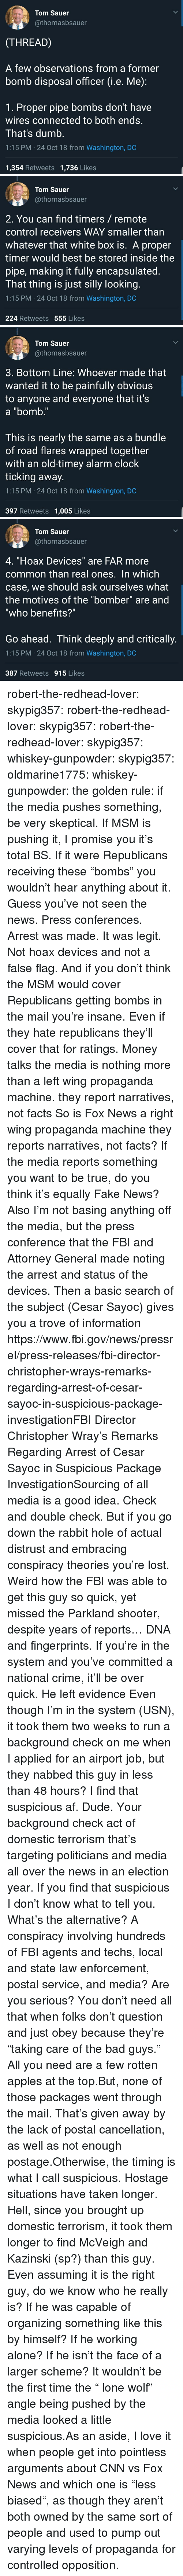 "press conference: Tom Sauer  @thomasbsauer  (THREAD)  A few observations from a former  bomb disposal officer G.e. Me)  1. Proper pipe bombs don't have  wires connected to both ends.  That's dumb.  1:15 PM 24 Oct 18 from Washington, DC  1,354 Retweets 1,736 Likes   Tom Sauer  @thomasbsauer  2. You can find timers/ remote  control receivers WAY smaller than  whatever that white box is. A proper  timer would best be stored inside the  pipe, making it fully encapsulated  I hat thing is just silly looking  1:15 PM 24 Oct 18 from Washington, DC  224 Retweets 555 Likes   Tom Sauer  @thomasbsauer  3. Bottom Line: Whoever made that  wanted it to be painfully obvious  to anyone and everyone that it's  a ""bomb.""  This is nearly the same as a bundle  of road flares wrapped together  with an old-timey alarm clock  ticking away.  1:15 PM 24 Oct 18 from Washington, DC  397 Retweets 1,005 Likes   Tom Sauer  @thomasbsauer  4, ""Hoax Devices"" are FAR more  common than real ones. In which  case, we should ask ourselves what  the motives of the ""bomber"" are and  ""who benefits?""  Go ahead. Think deeply and critically.  1:15 PM 24 Oct 18 from Washington, DC  387 Retweets 915 Likes robert-the-redhead-lover:  skypig357:  robert-the-redhead-lover:  skypig357:  robert-the-redhead-lover:  skypig357:  whiskey-gunpowder:  skypig357:  oldmarine1775:  whiskey-gunpowder: the golden rule: if the media pushes something, be very skeptical. If MSM is pushing it, I promise you it's total BS. If it were Republicans receiving these ""bombs"" you wouldn't hear anything about it.   Guess you've not seen the news. Press conferences. Arrest was made. It was legit. Not hoax devices and not a false flag. And if you don't think the MSM would cover Republicans getting bombs in the mail you're insane. Even if they hate republicans they'll cover that for ratings. Money talks   the media is nothing more than a left wing propaganda machine. they report narratives, not facts  So is Fox News a right wing propaganda machine they reports narratives, not facts? If the media reports something you want to be true, do you think it's equally Fake News? Also I'm not basing anything off the media, but the press conference that the FBI and Attorney General made noting the arrest and status of the devices. Then a basic search of the subject (Cesar Sayoc) gives you a trove of information https://www.fbi.gov/news/pressrel/press-releases/fbi-director-christopher-wrays-remarks-regarding-arrest-of-cesar-sayoc-in-suspicious-package-investigationFBI Director Christopher Wray's Remarks Regarding Arrest of Cesar Sayoc in Suspicious Package InvestigationSourcing of all media is a good idea. Check and double check. But if you go down the rabbit hole of actual distrust and embracing conspiracy theories you're lost.   Weird how the FBI was able to get this guy so quick, yet missed the Parkland shooter, despite years of reports…  DNA and fingerprints. If you're in the system and you've committed a national crime, it'll be over quick. He left evidence   Even though I'm in the system (USN), it took them two weeks to run a background check on me when I applied for an airport job, but they nabbed this guy in less than 48 hours? I find that suspicious af.  Dude. Your background check  act of domestic terrorism that's targeting politicians and media all over the news in an election year. If you find that suspicious I don't know what to tell you. What's the alternative? A conspiracy involving hundreds of FBI agents and techs, local and state law enforcement, postal service, and media? Are you serious?   You don't need all that when folks don't question and just obey because they're ""taking care of the bad guys."" All you need are a few rotten apples at the top.But, none of those packages went through the mail. That's given away by the lack of postal cancellation, as well as not enough postage.Otherwise, the timing is what I call suspicious. Hostage situations have taken longer. Hell, since you brought up domestic terrorism, it took them longer to find McVeigh and Kazinski (sp?) than this guy.  Even assuming it is the right guy, do we know who he really is? If he was capable of organizing something like this by himself? If he working alone? If he isn't the face of a larger scheme? It wouldn't be the first time the "" lone wolf"" angle being pushed by the media looked a little suspicious.As an aside, I love it when people get into pointless arguments about CNN vs Fox News and which one is ""less biased"", as though they aren't both owned by the same sort of people and used to pump out varying levels of propaganda for controlled opposition."